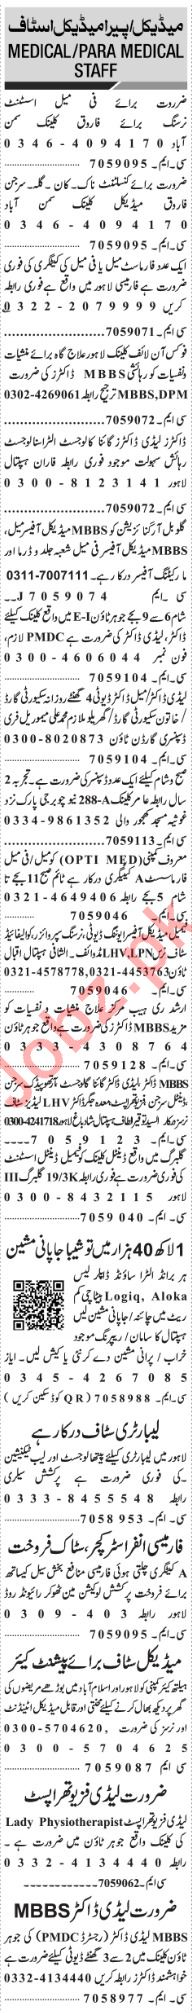 Jang Sunday Classified Ads 13th Jan 2019 for Medical Staff